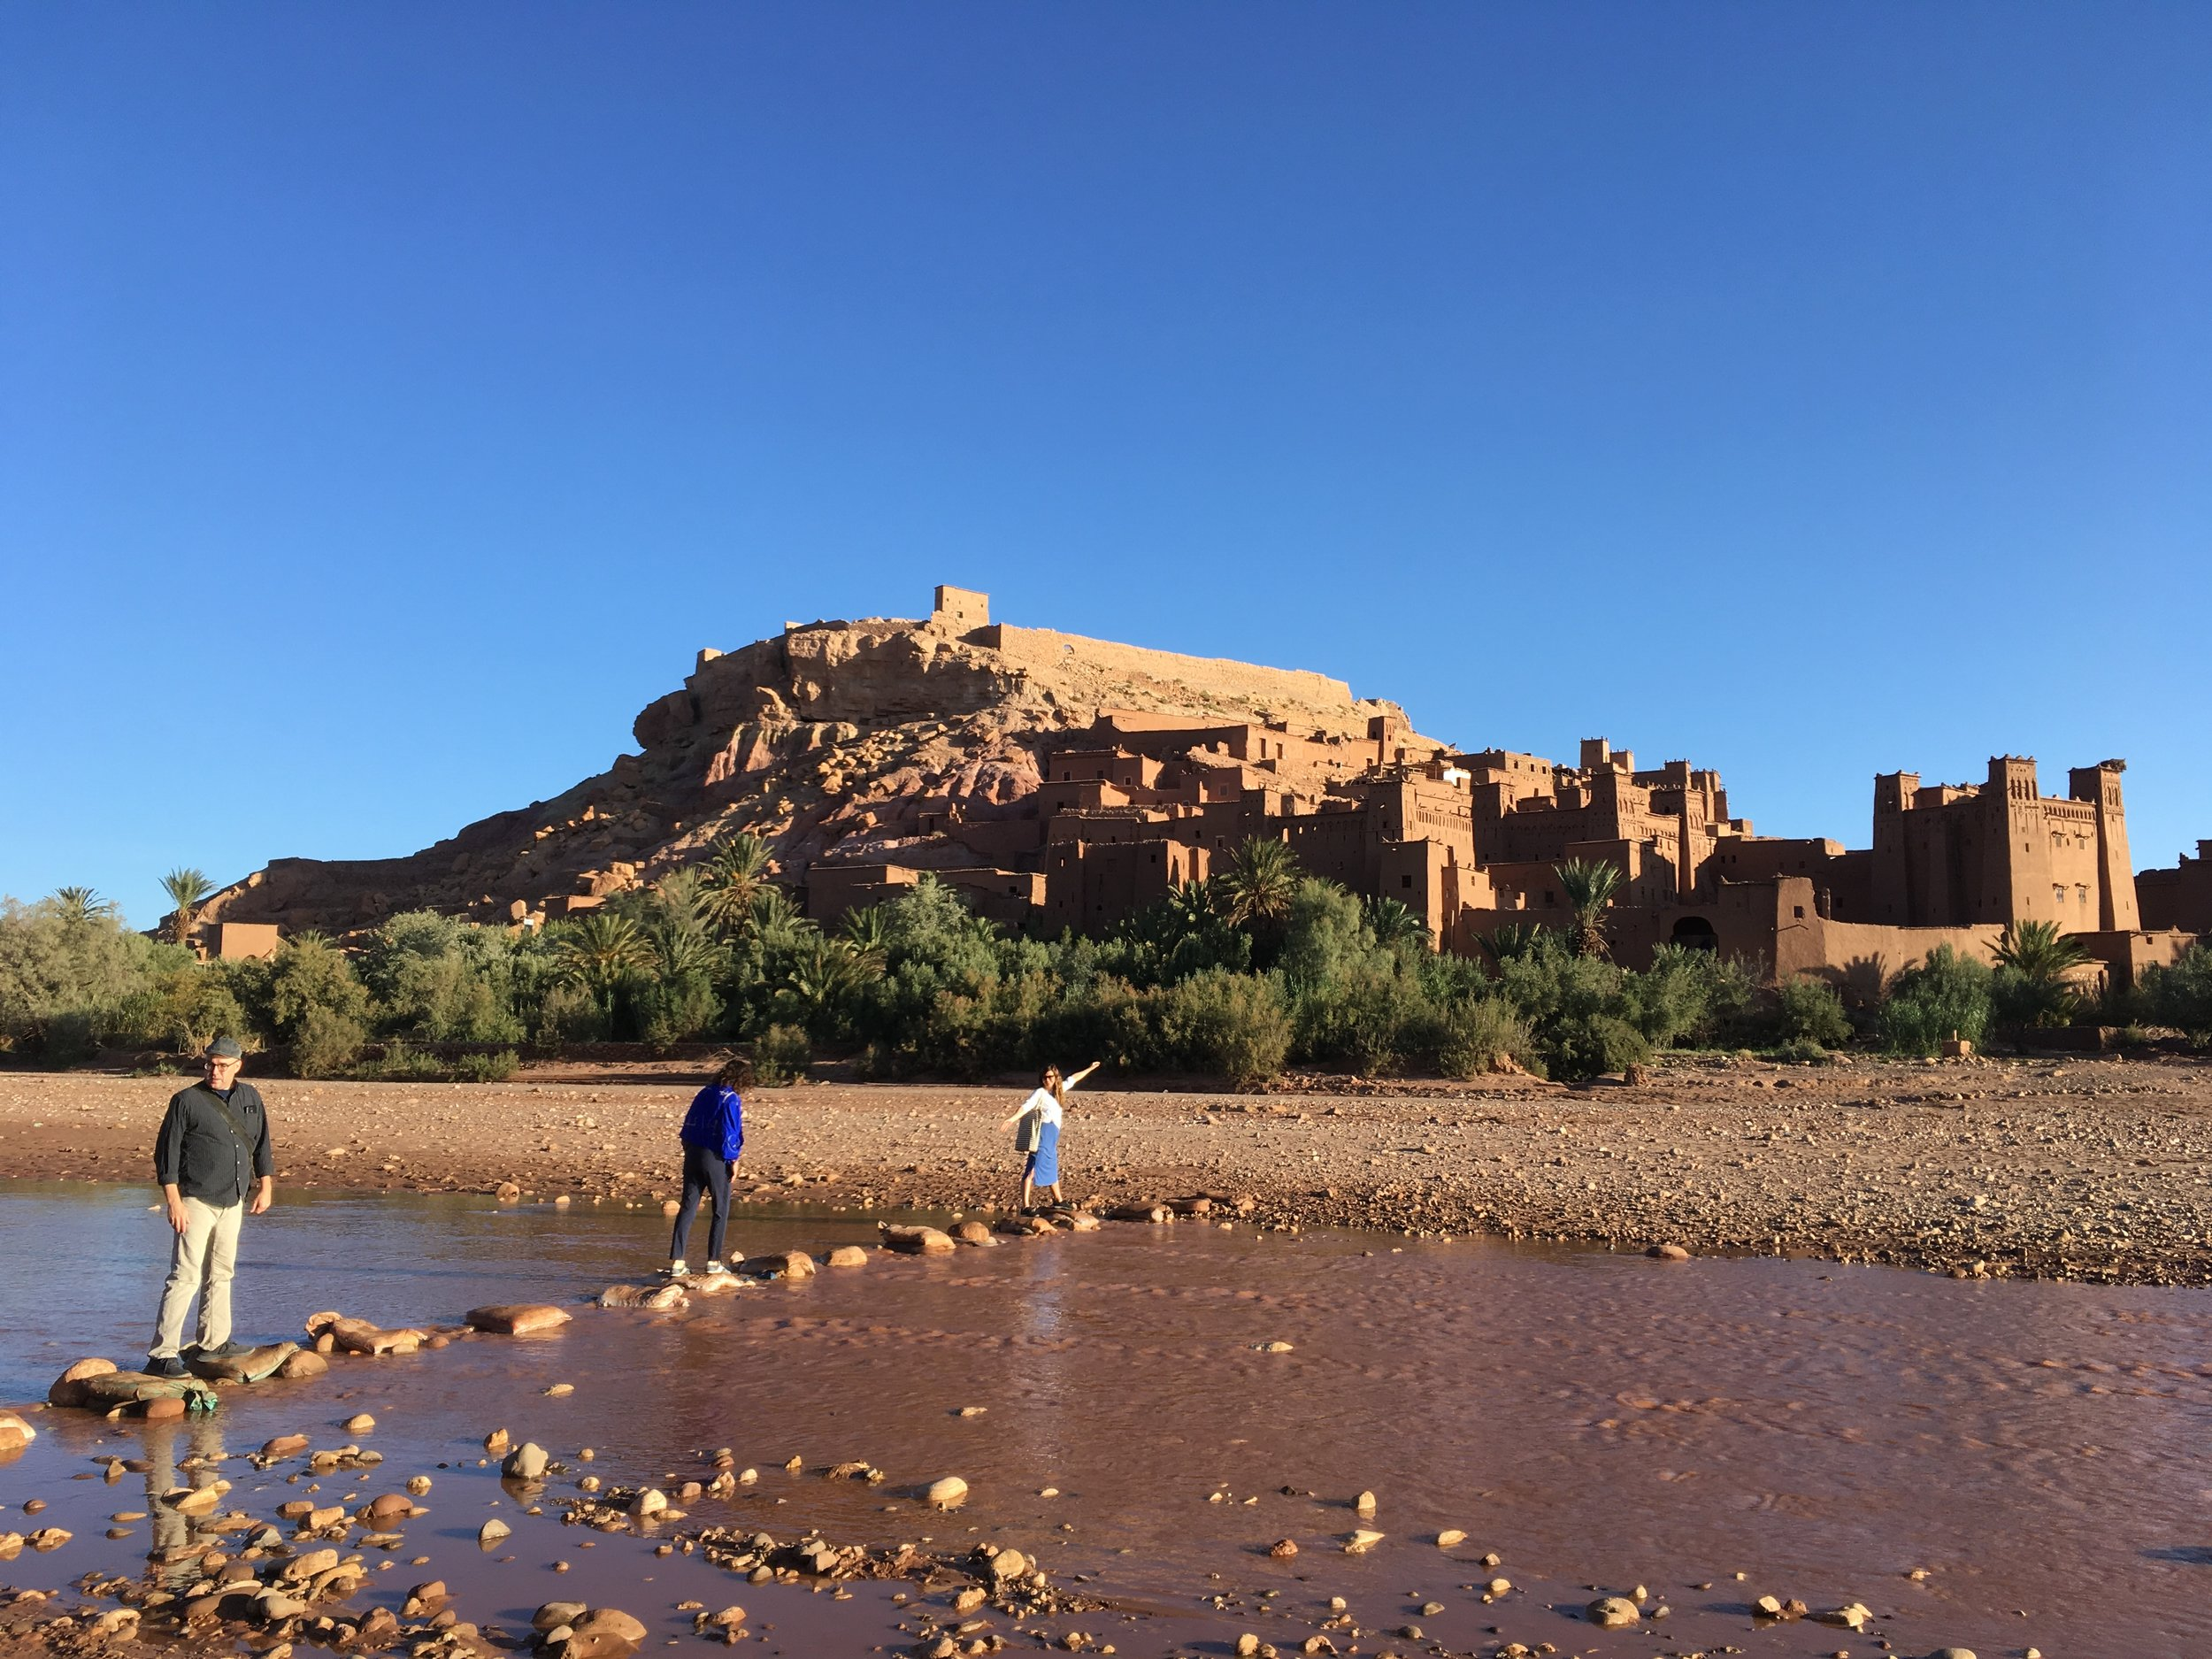 On our way to Ait Ben Haddou